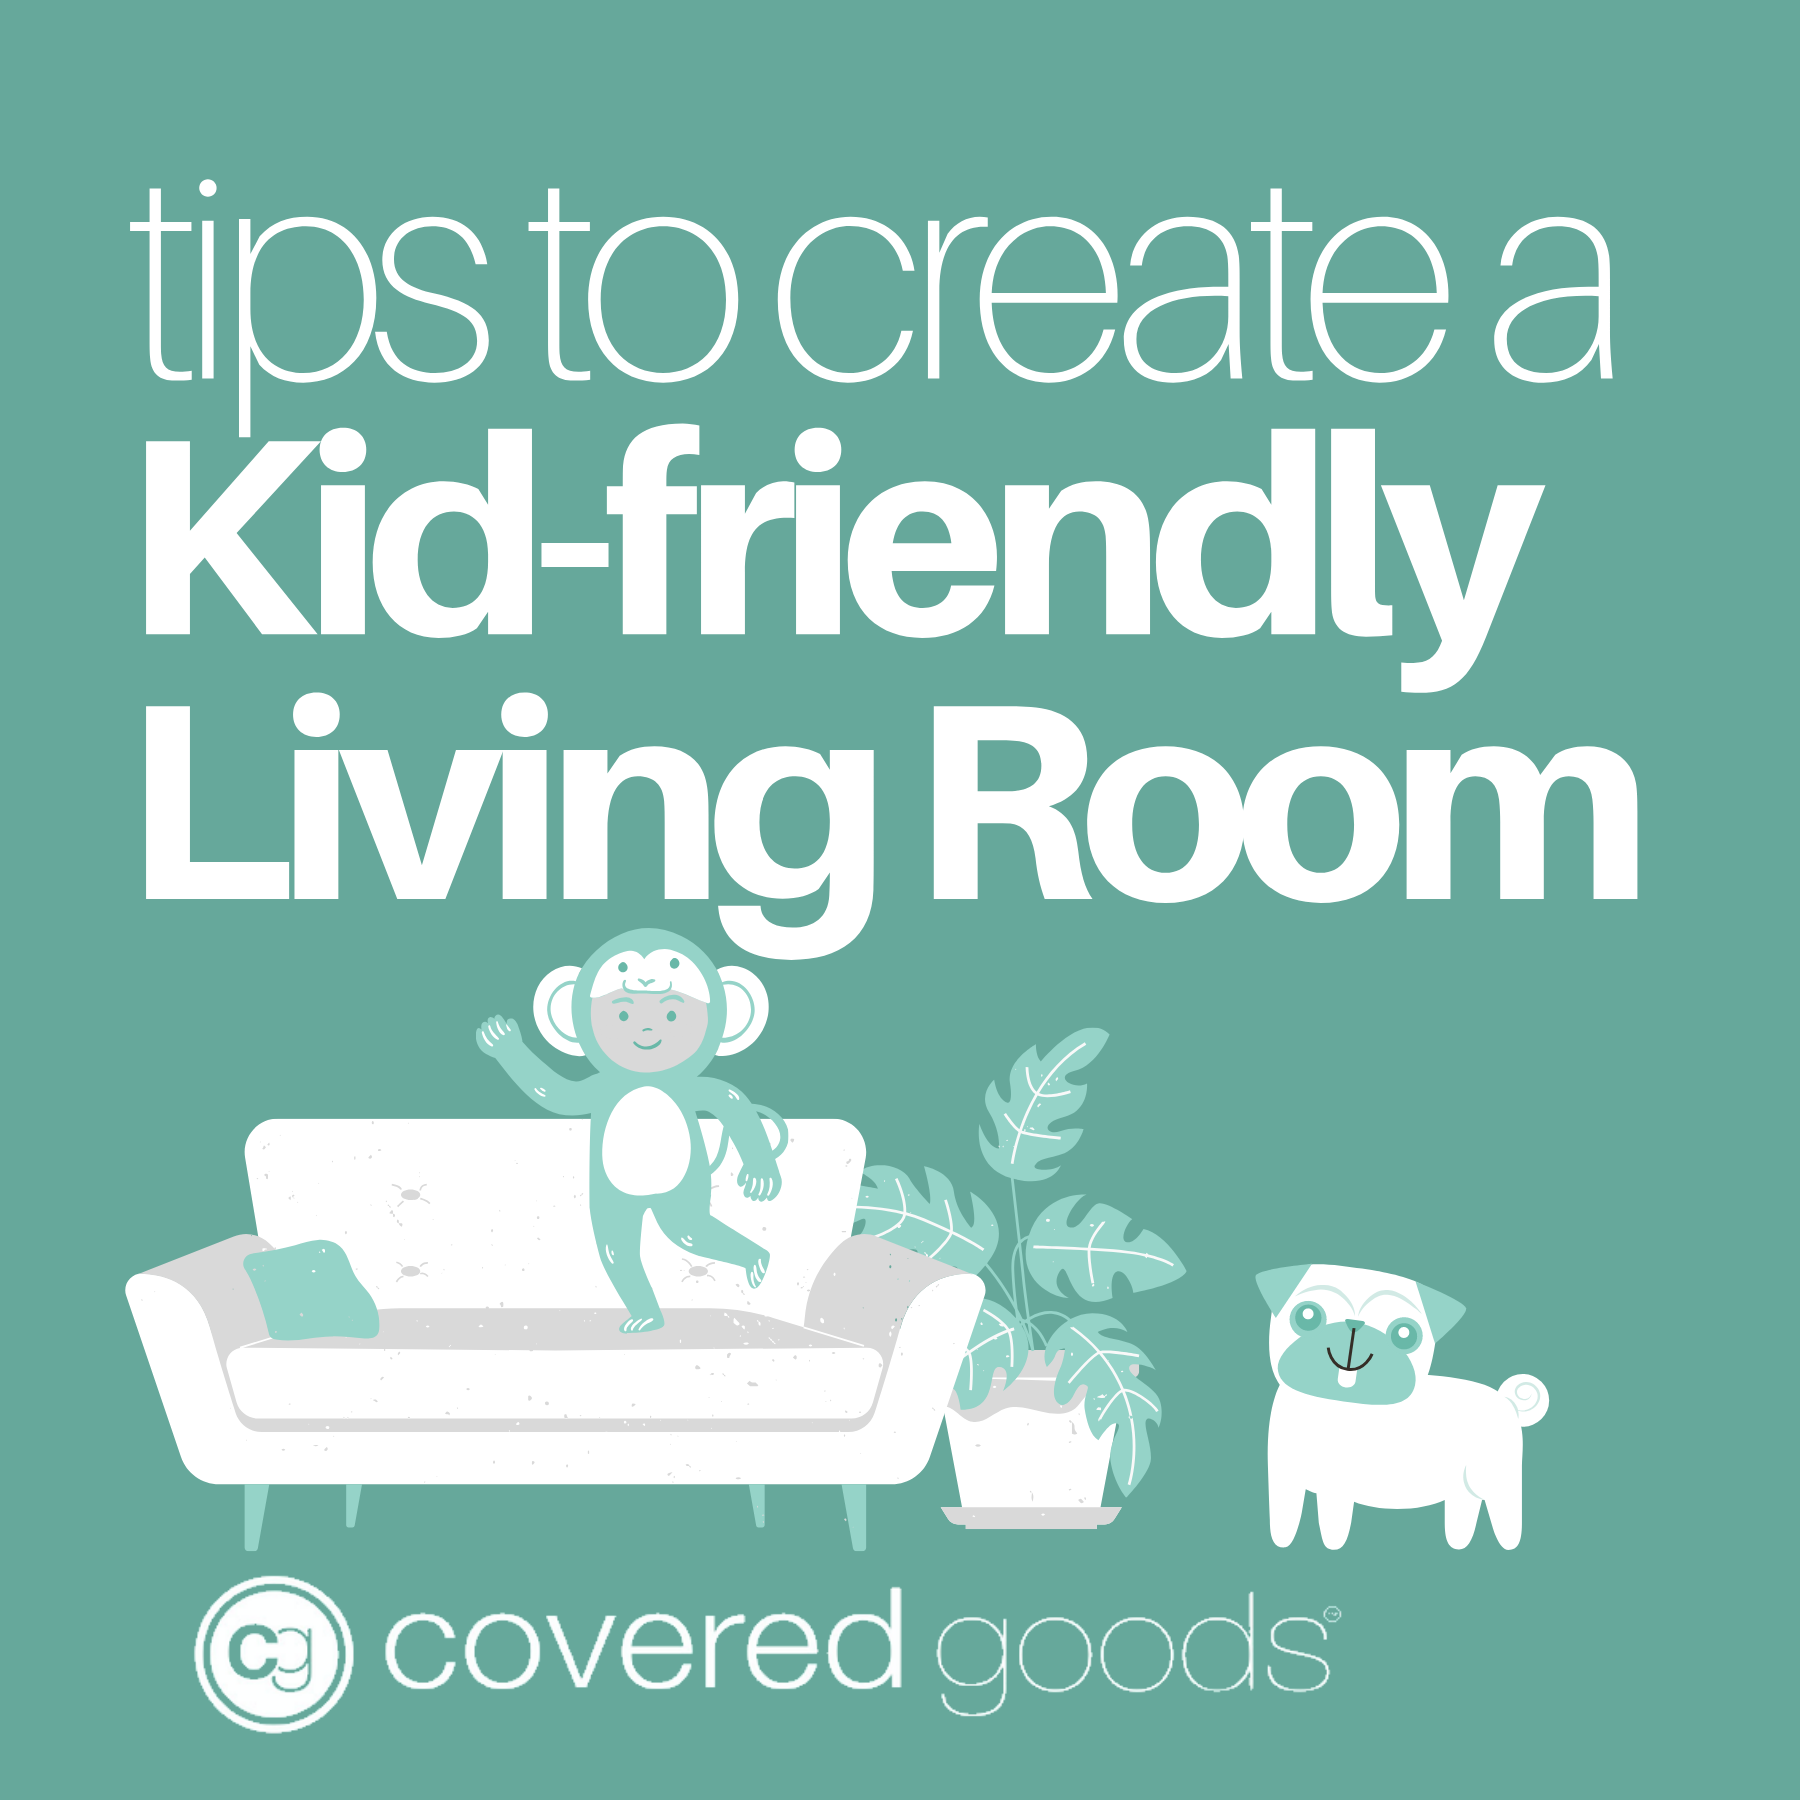 Stuck Inside? Tips to Create a Kid-friendly Living Room